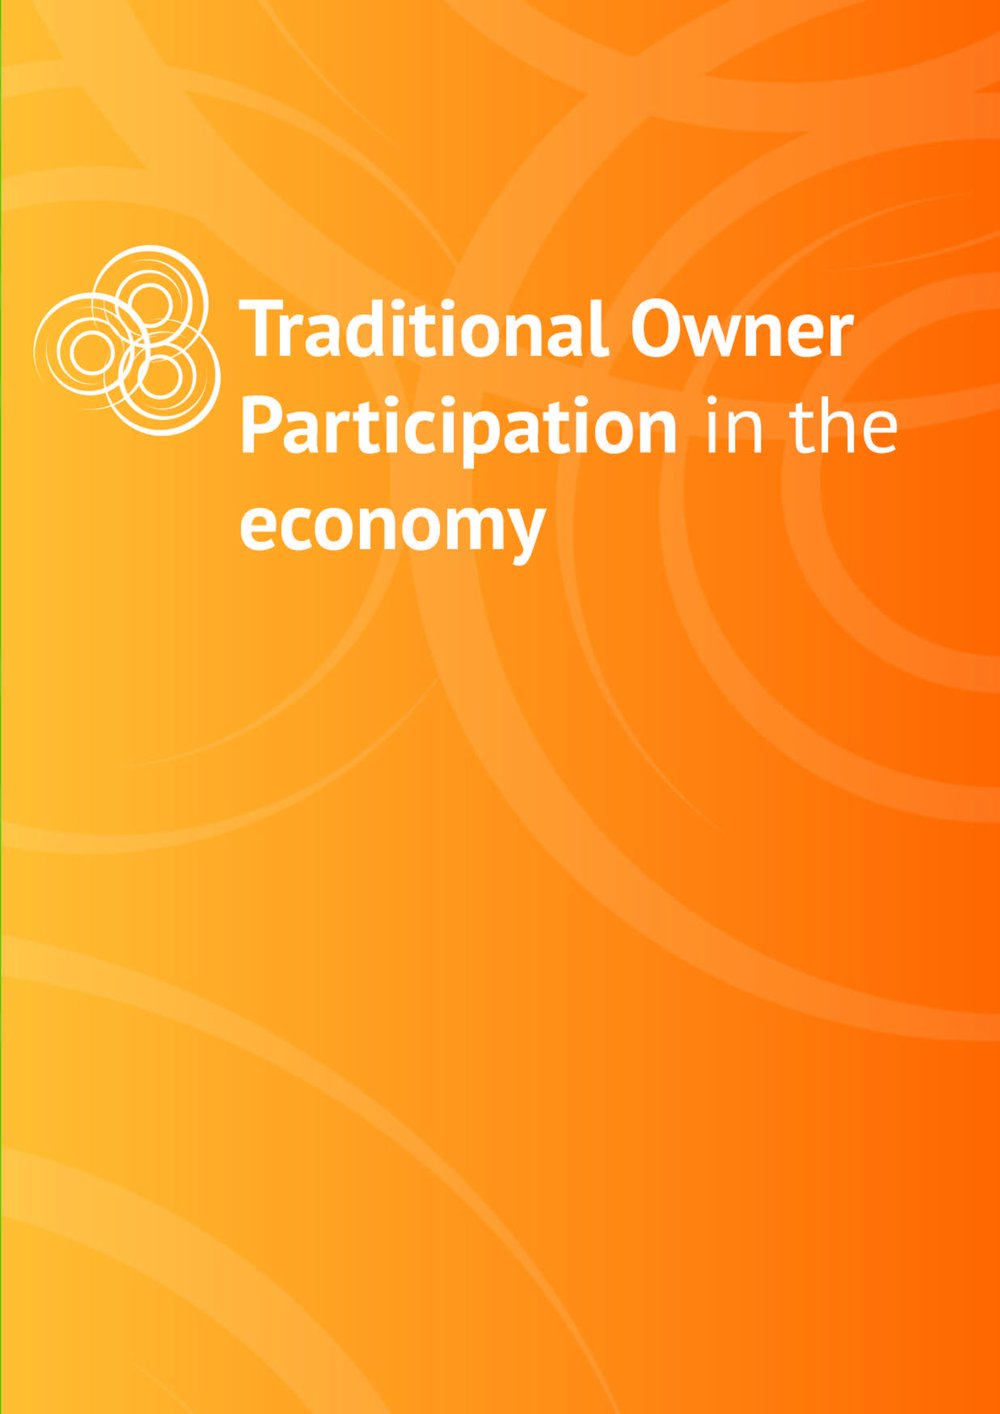 Participation in the economy